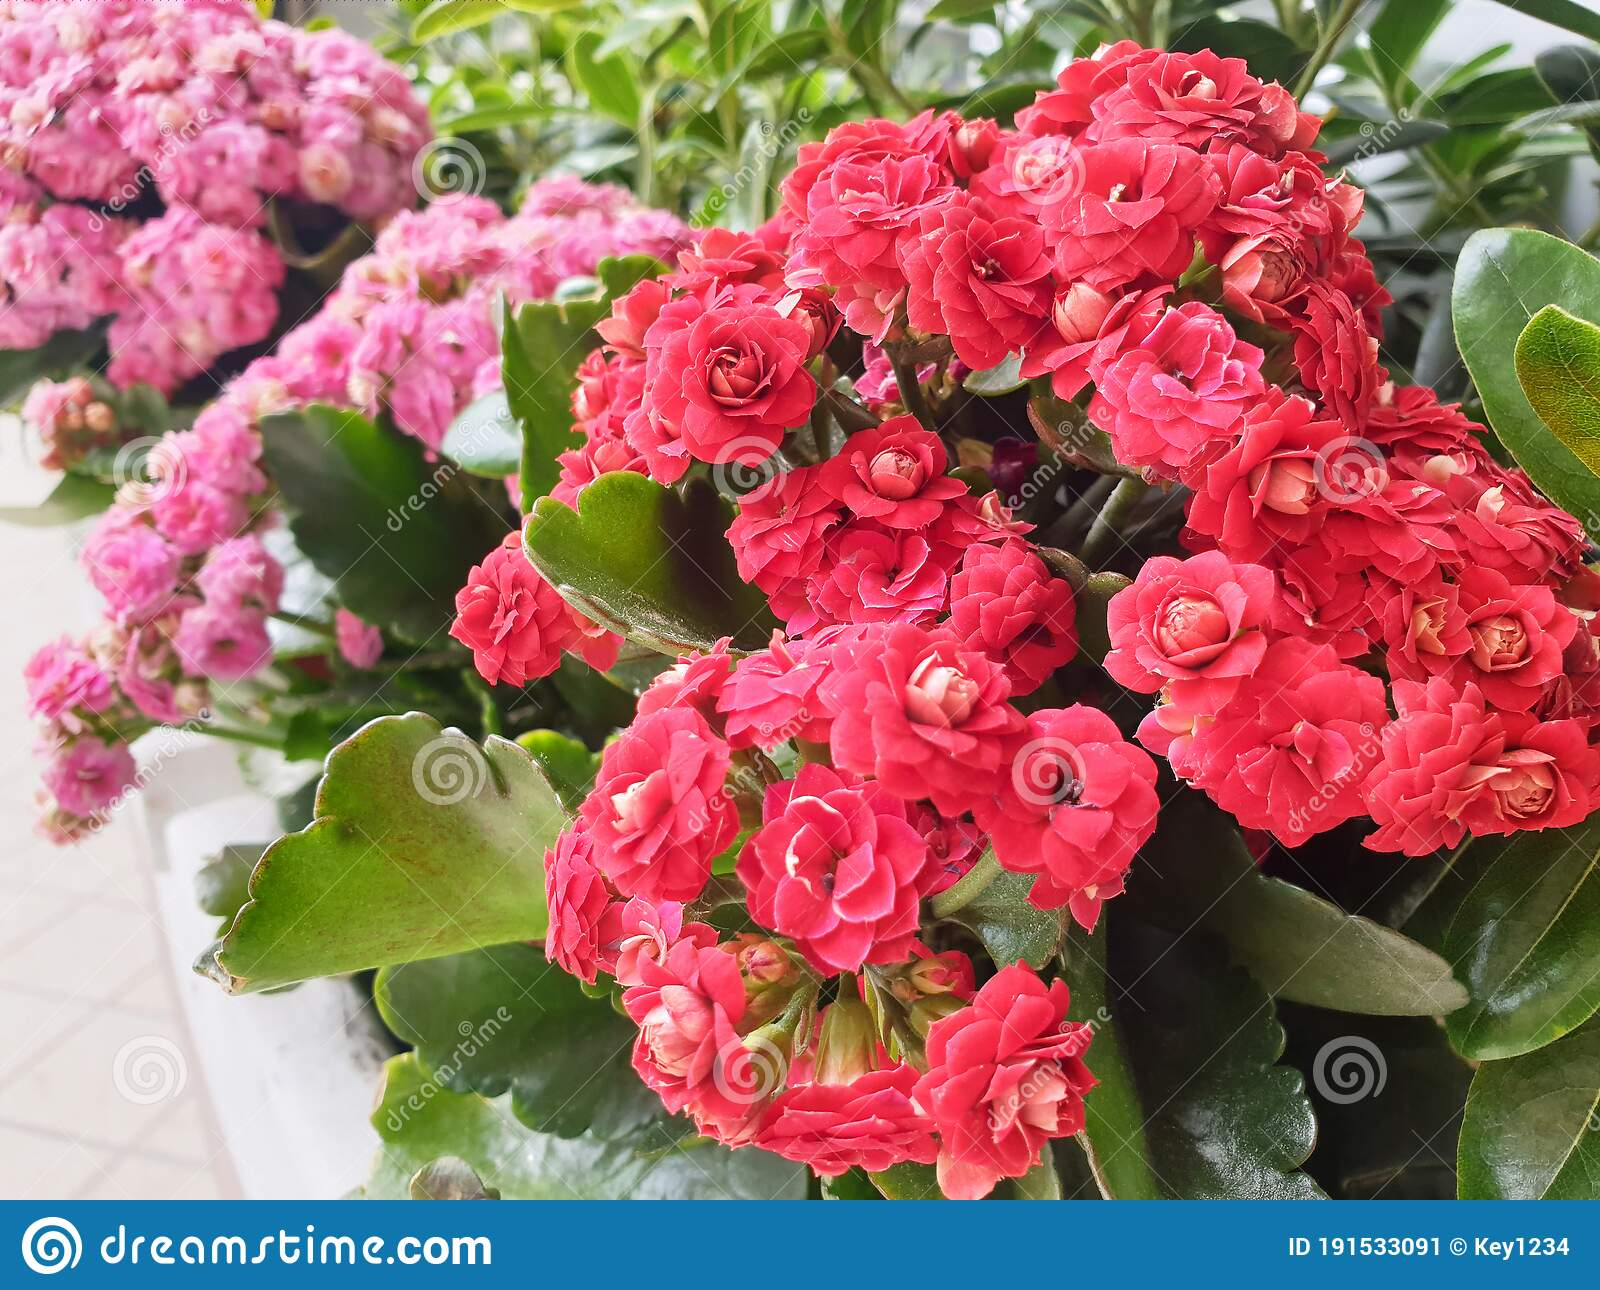 Red And Pink Begonia Flowers Stock Image - Image of leaf, flora: 191533091